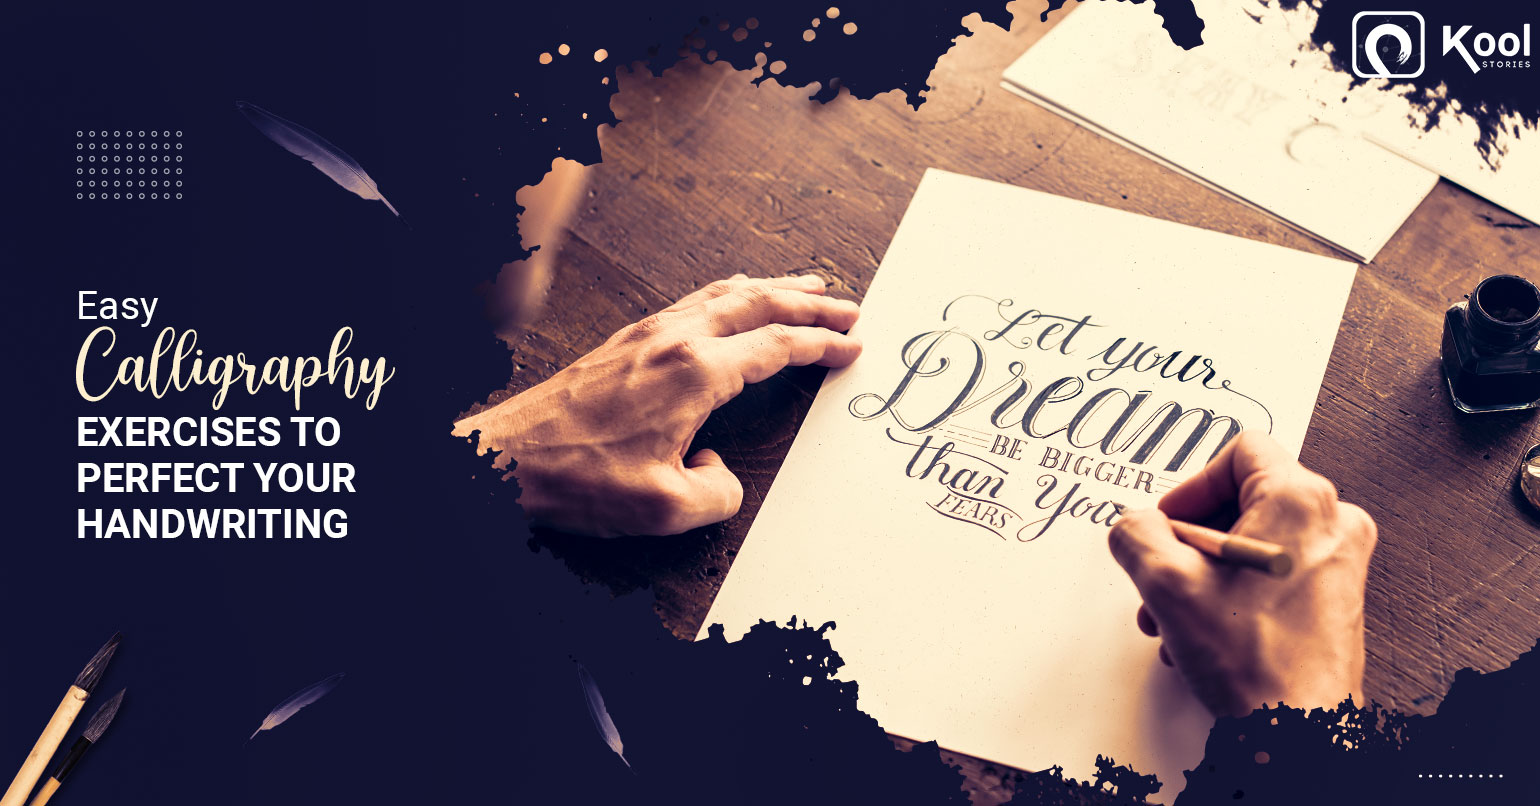 Easy Calligraphy Exercises To Perfect Your Handwriting